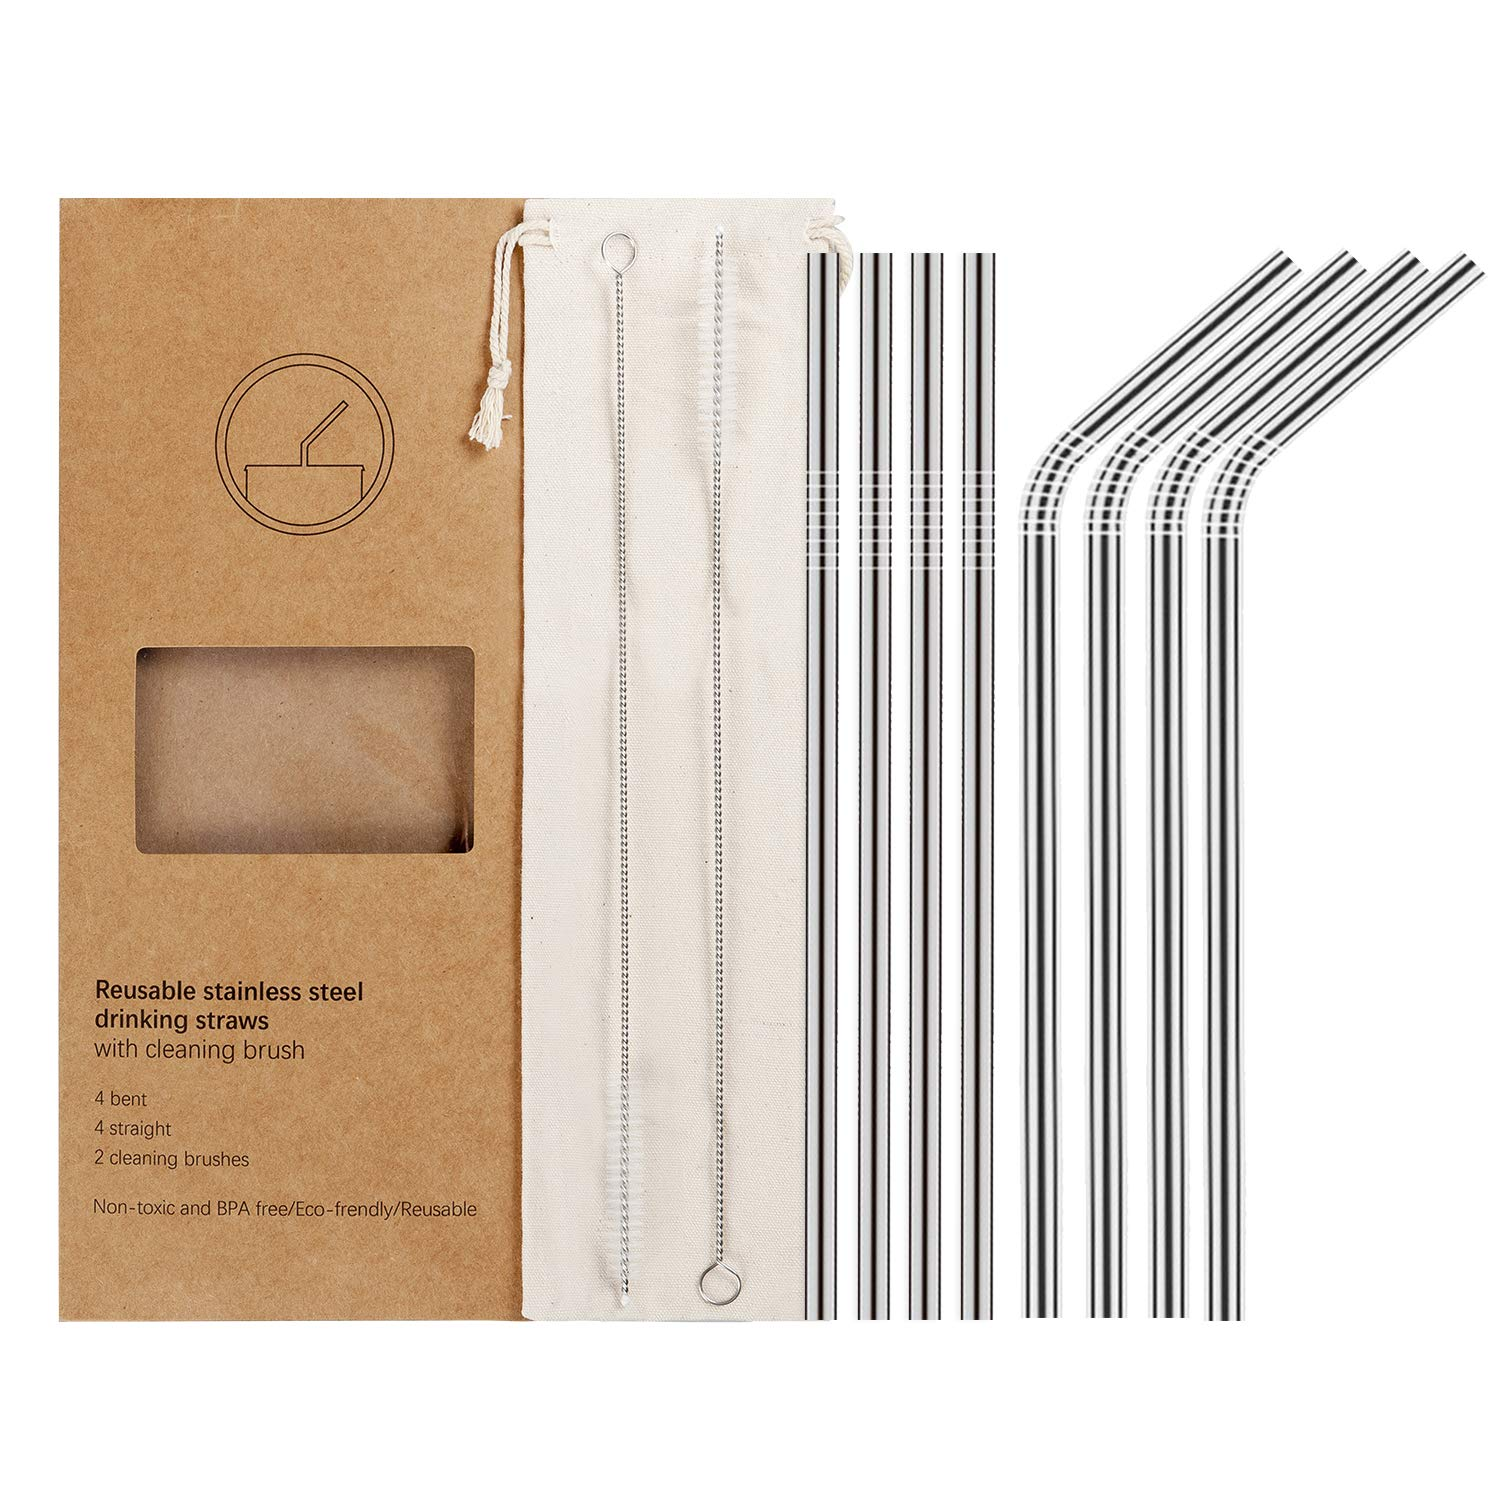 YiHonG set of 8 stainless steel straws - Includes a cleaning brush and pouch. Say no to plastic straws!